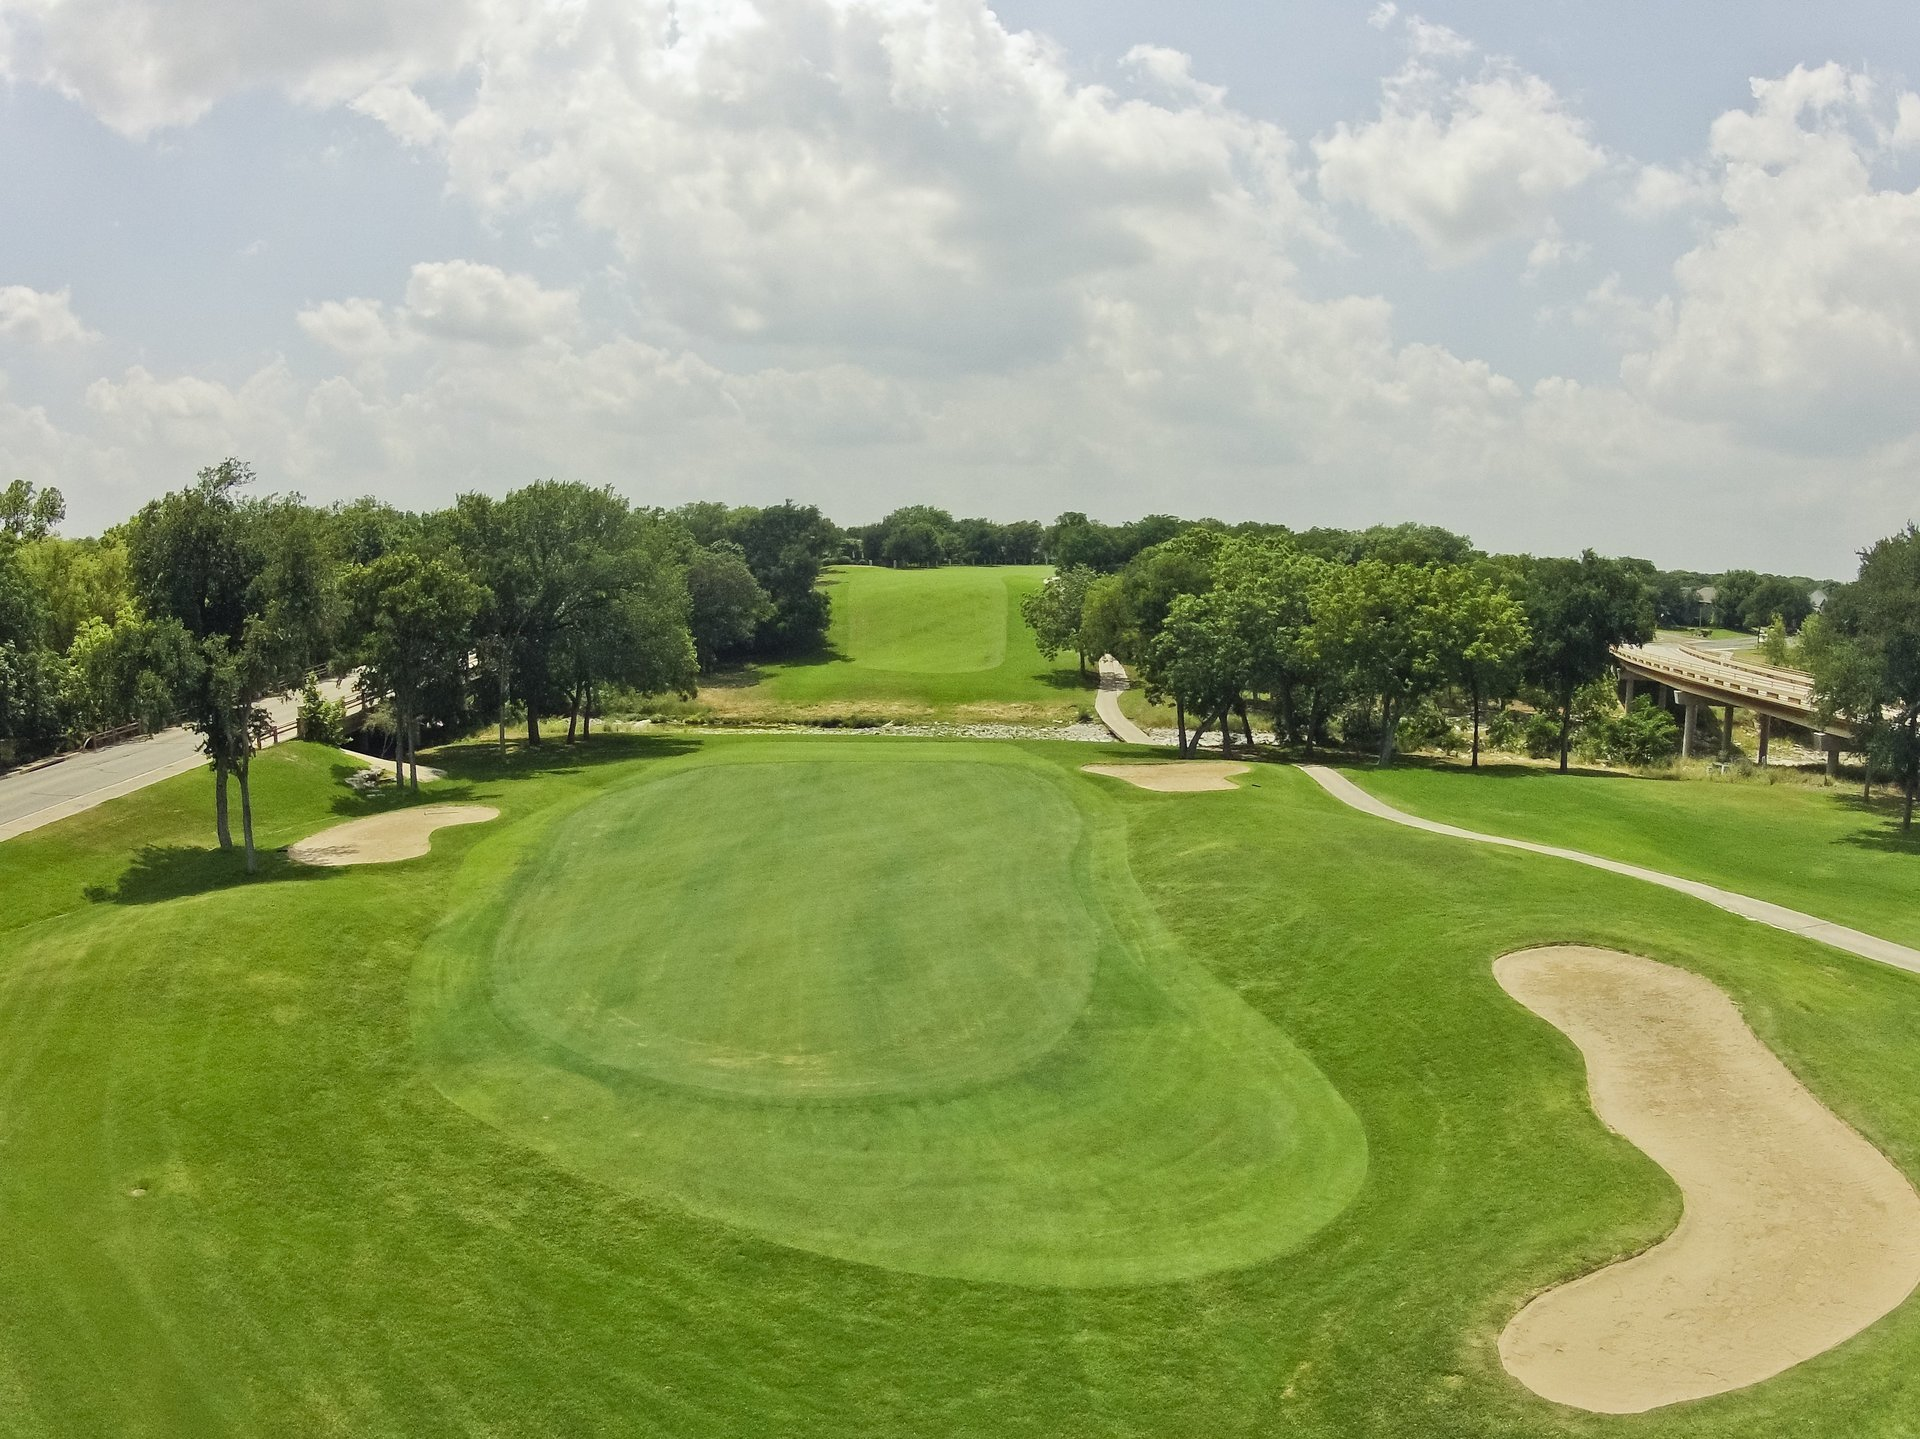 berry creek dating site There's no such thing as an ordinary saturday at berry creek country club   texas providing outstanding amenities and service in a prestigious private club   music, karaoke night, chef's cooking class, special themed dinners, date  night.